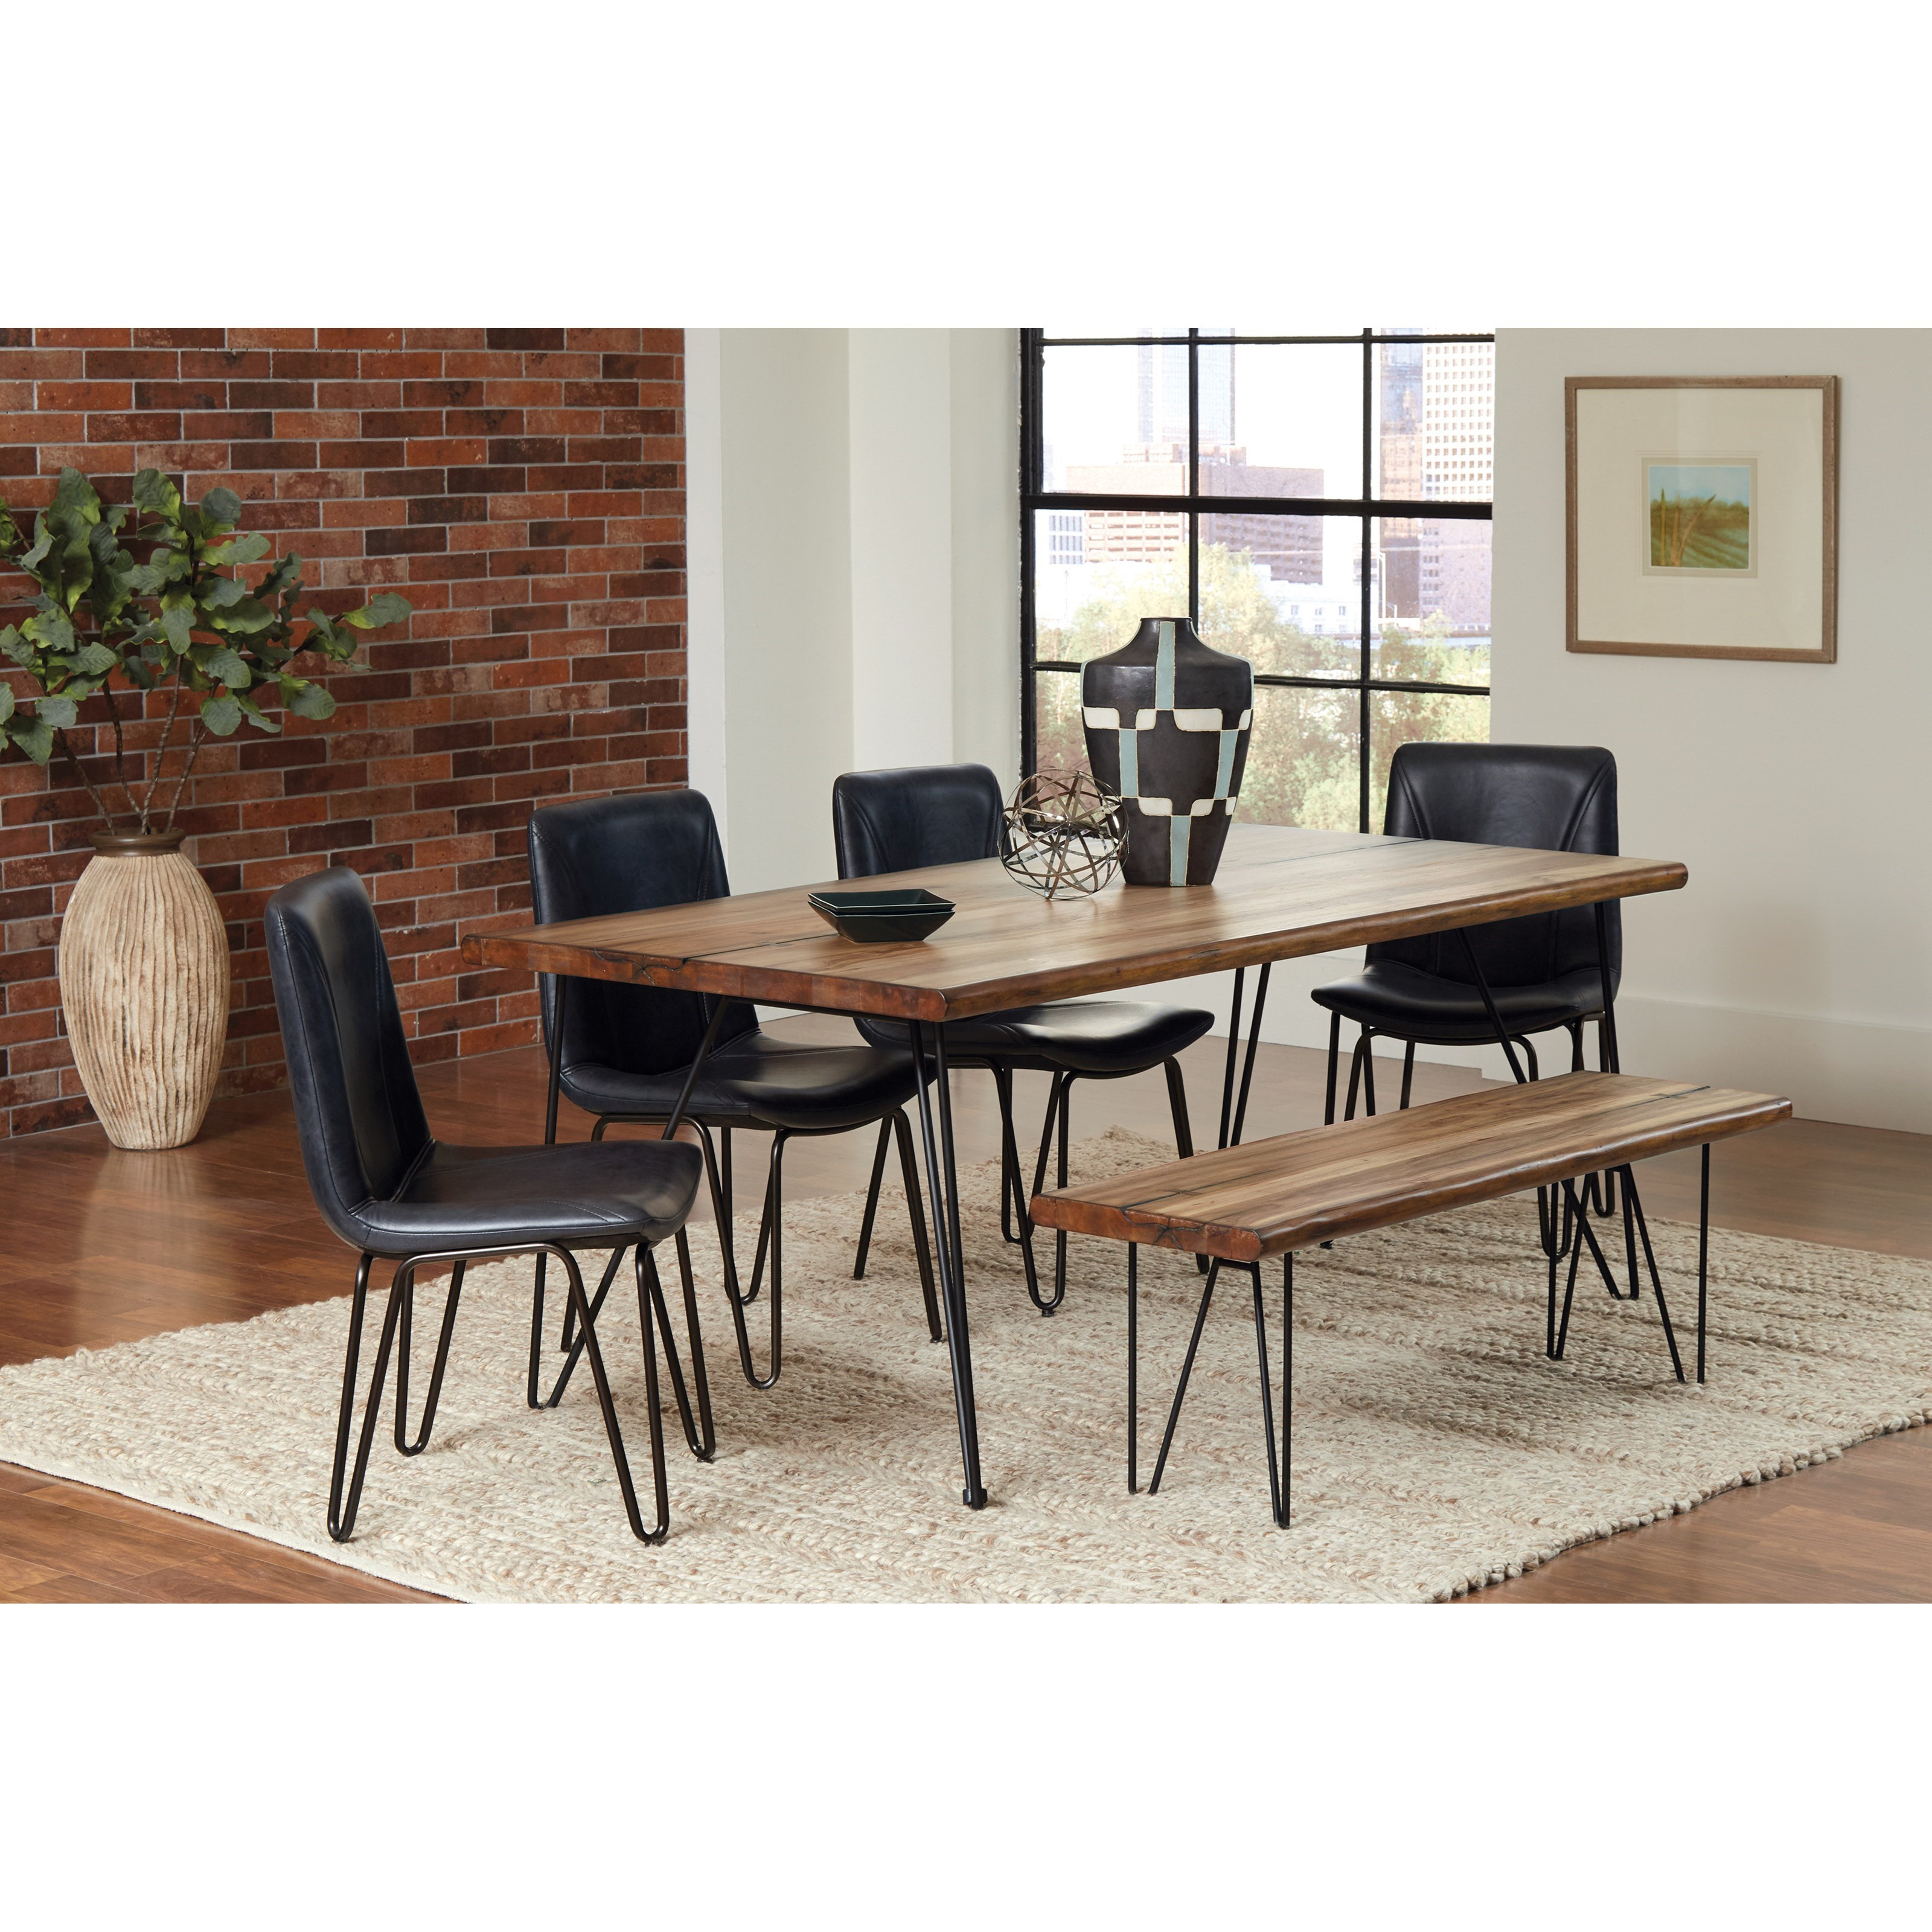 Coaster Chambler Vintage Dining Set With Bench Value City Furniture Table Chair Set With Bench